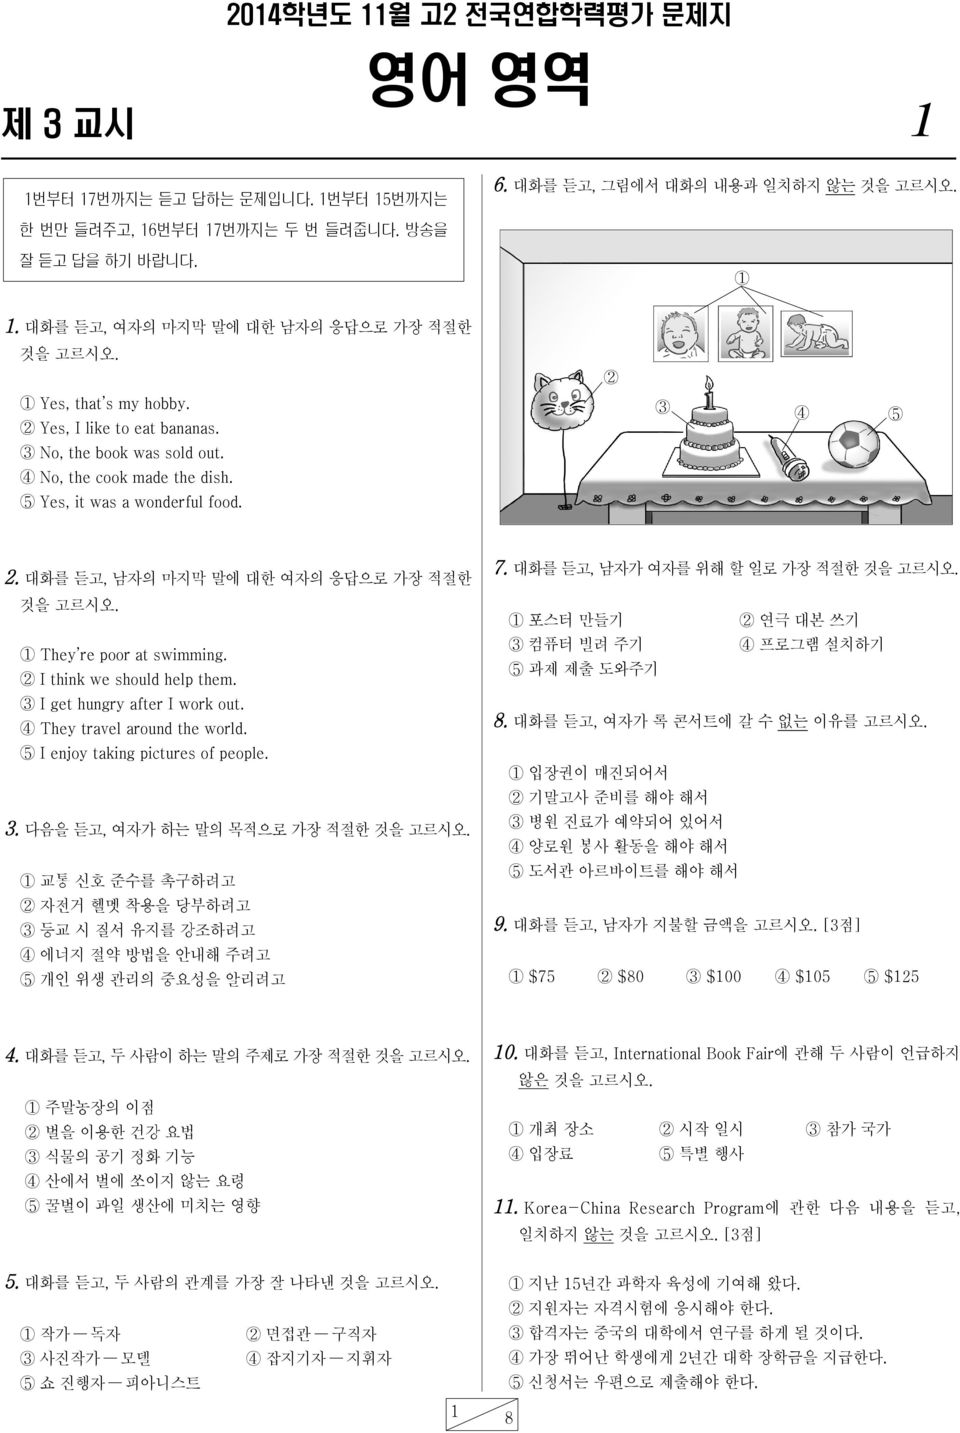 1 They re poor at swimming. 2 I think we should help them. 3 I get hungry after I work out. 4 They travel around the world. 5 I enjoy taking pictures of people. 3. 다음을 듣고, 여자가 하는 말의 목적으로 가장 적절한 것을 고르시오.